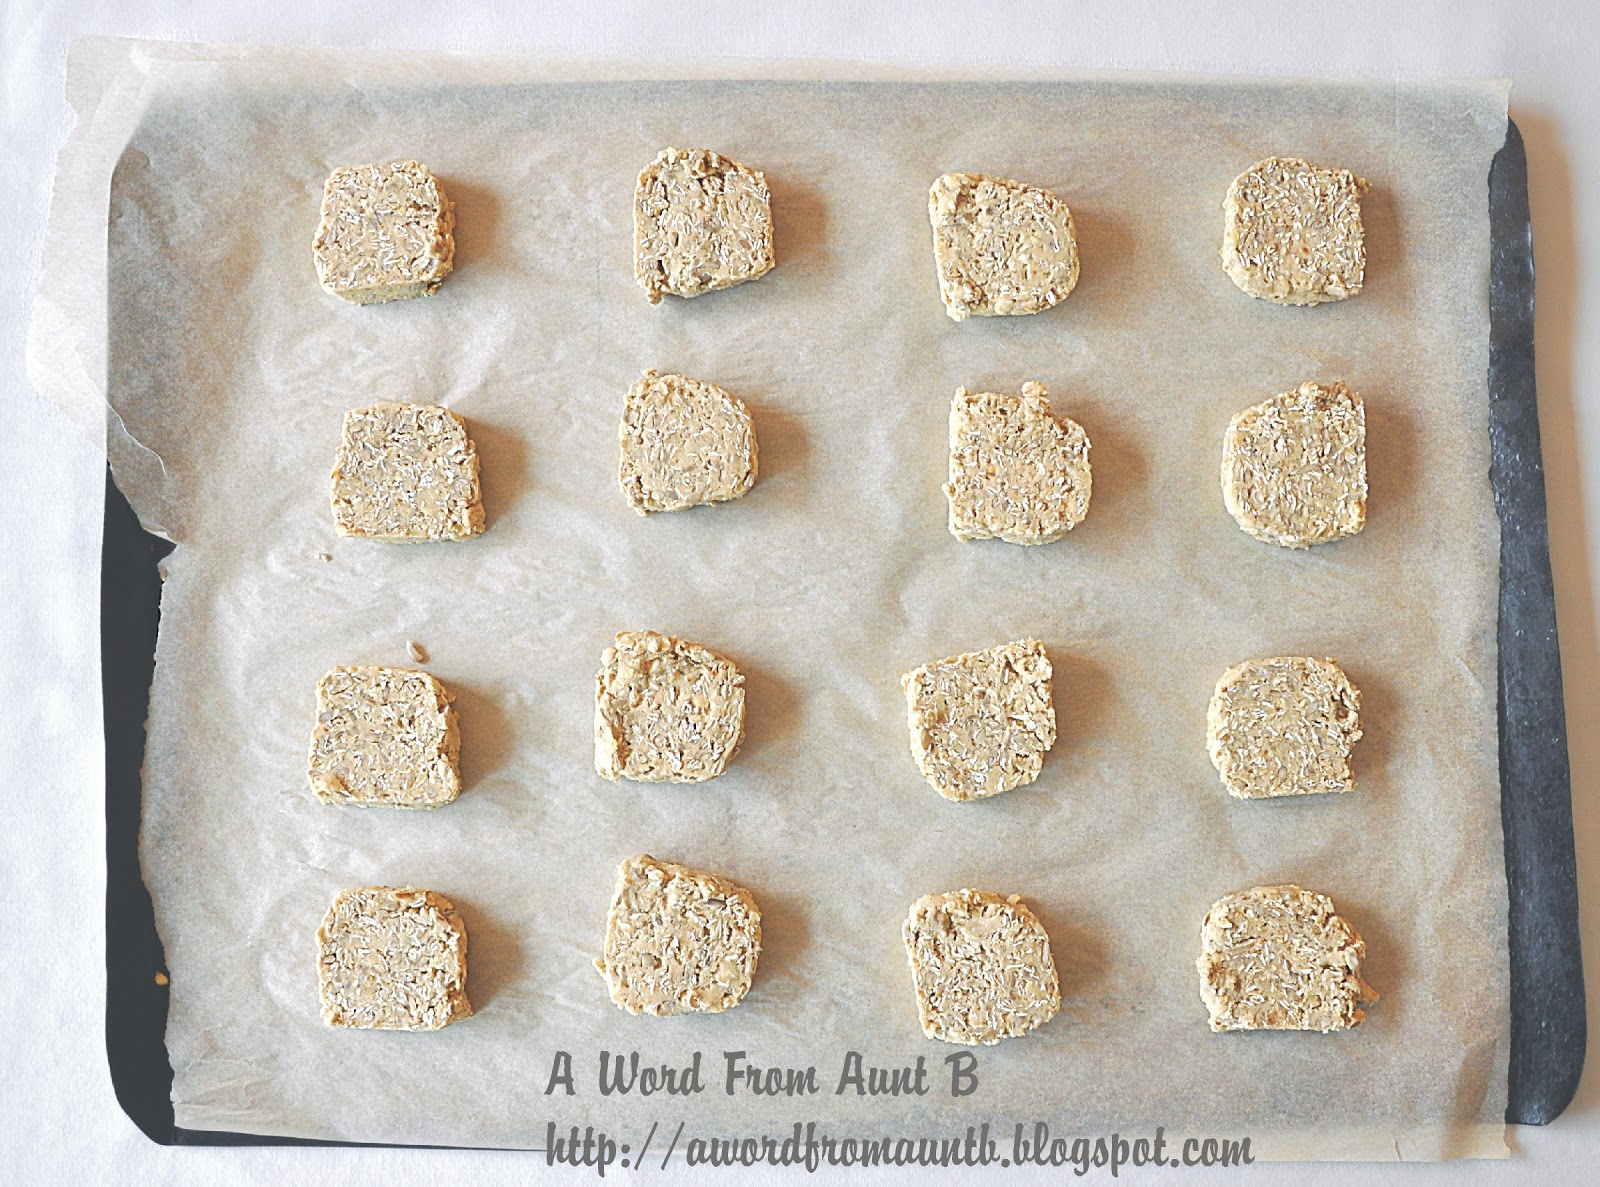 A Word From Aunt B: Sunflower Seed Cookies